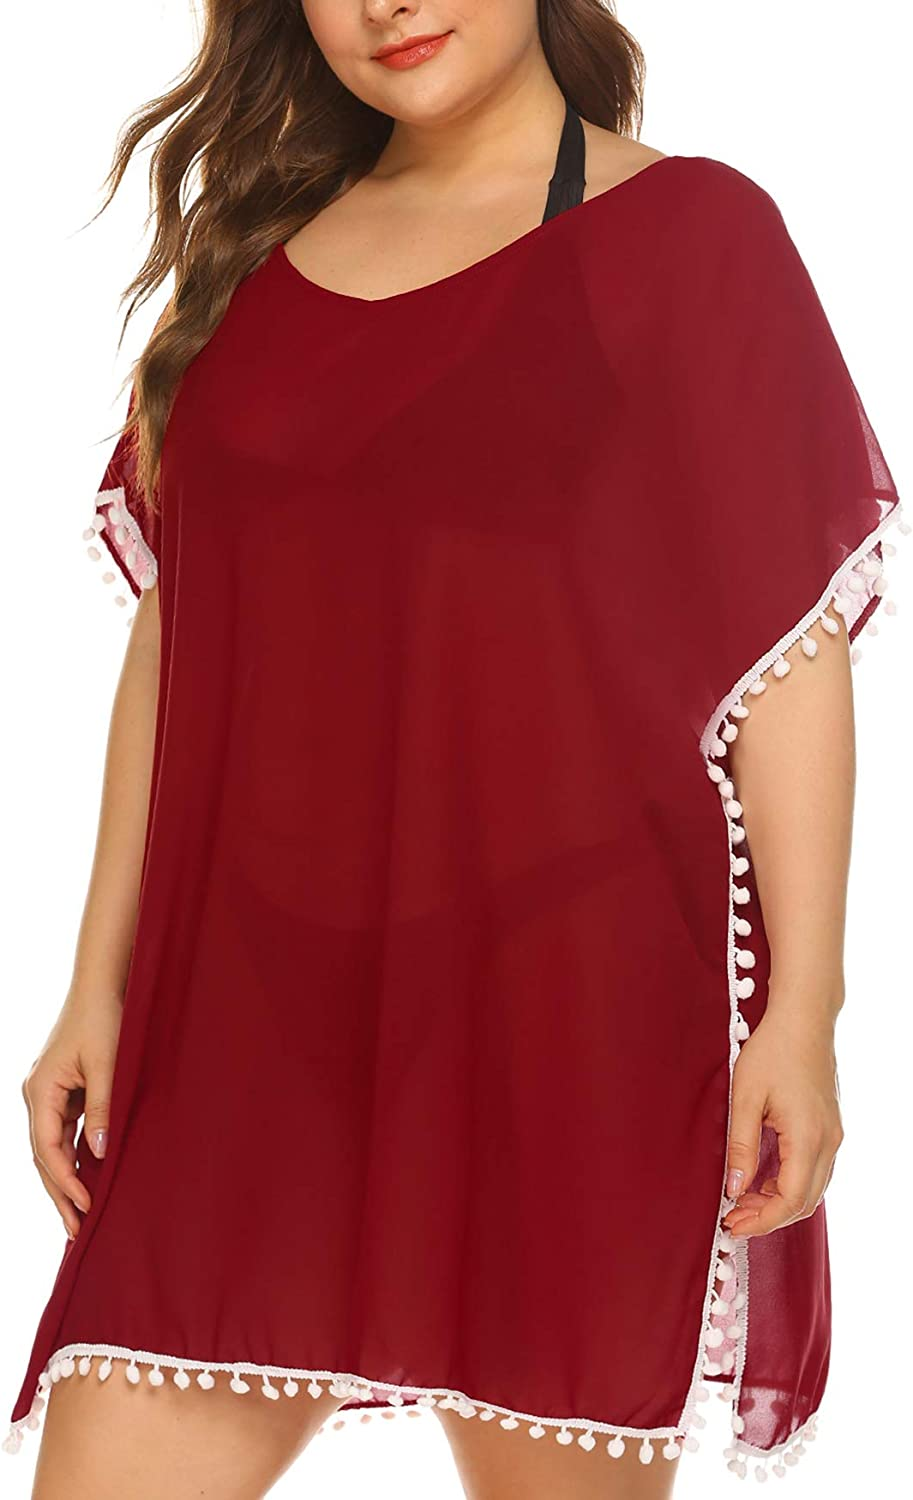 IN'VOLAND Womens Plus Size Bathing Suit Cover Up Chiffon Swimsuit Bikini Beach Cover Ups for Swimwear